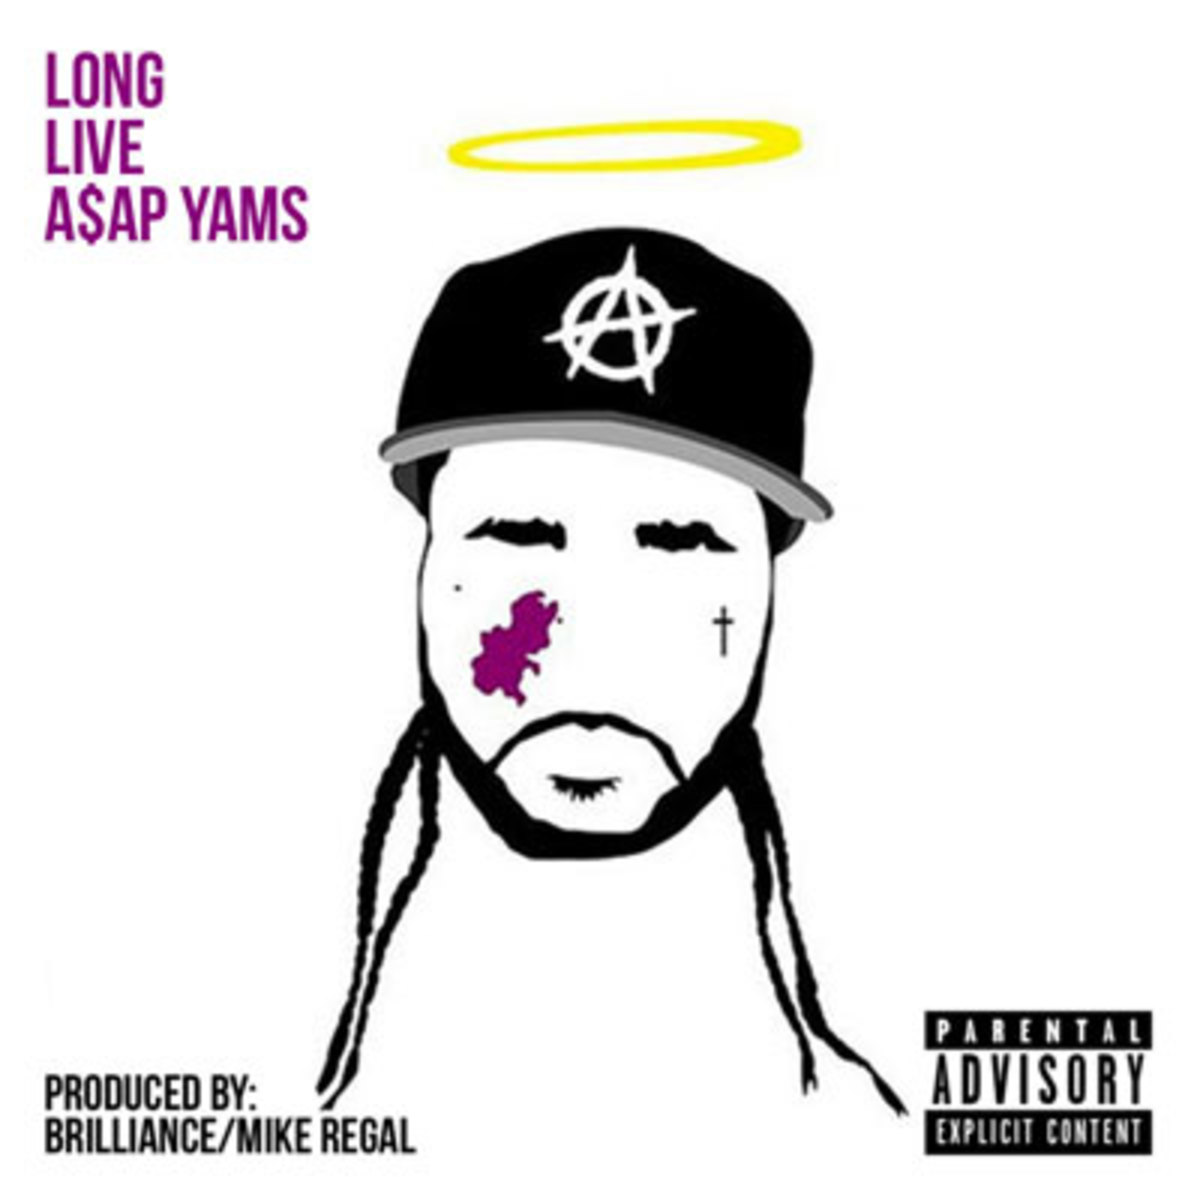 reggie-bonds-long-live-asap-yams.jpg